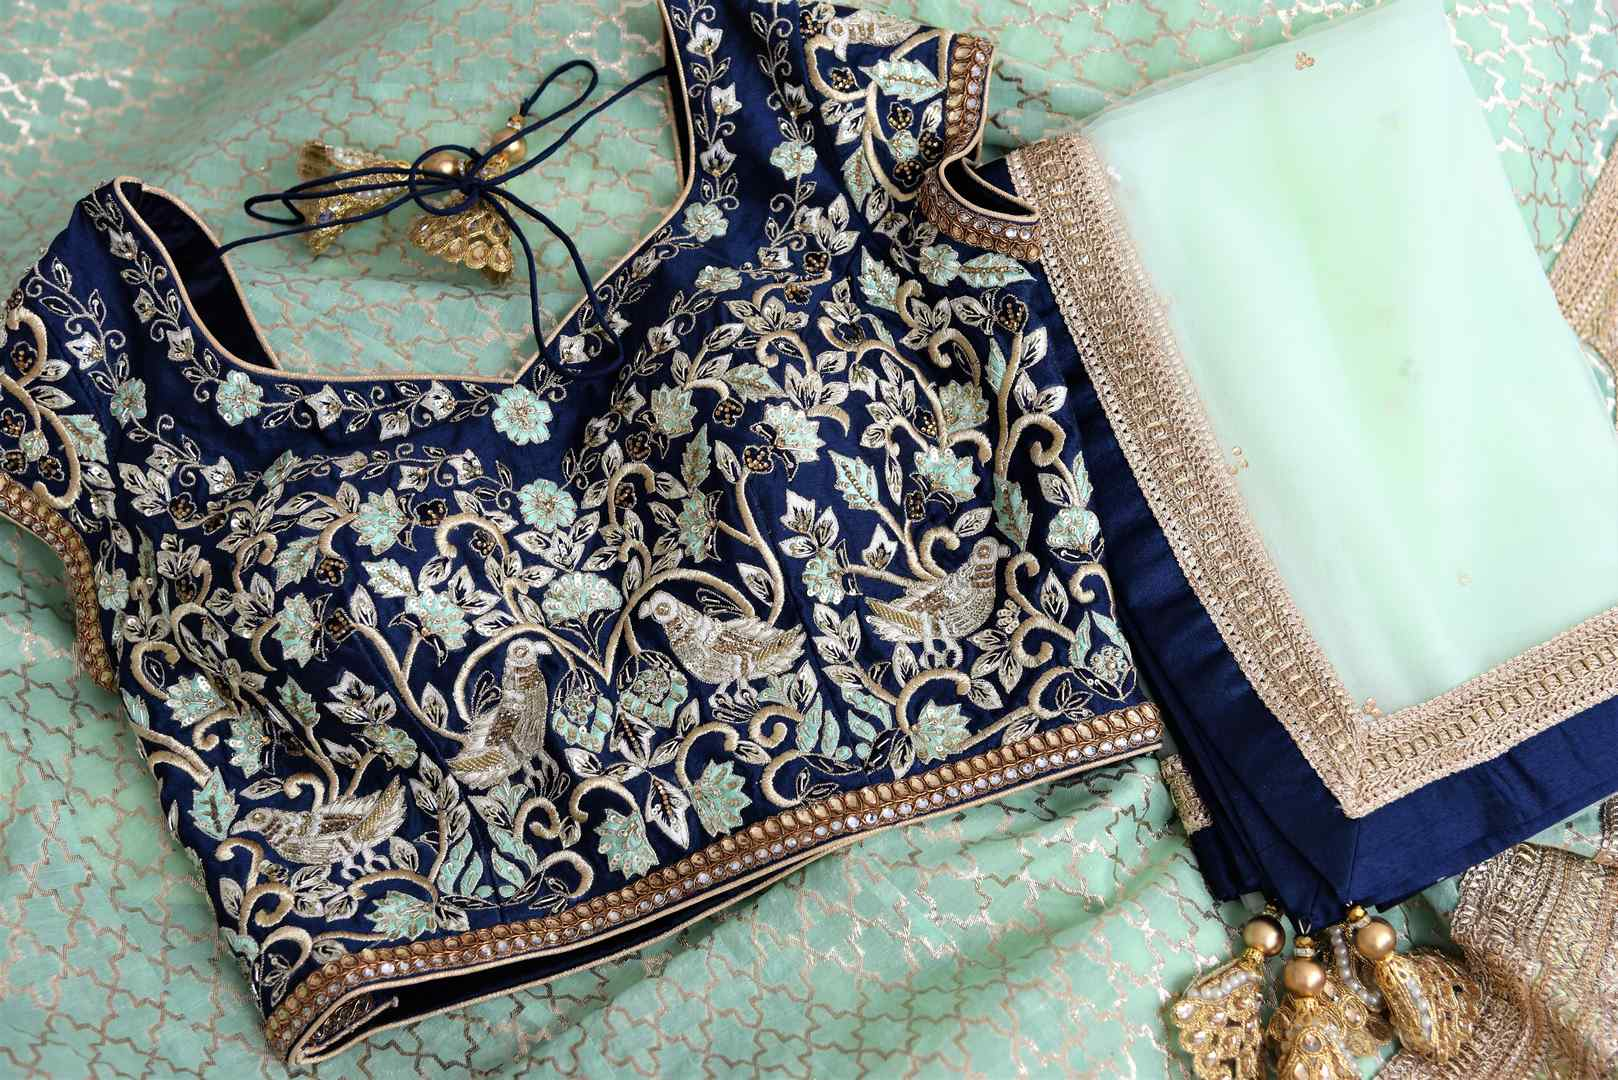 Buy pastel green and blue embroidered chanderi lehenga with dupatta online in USA. Add brilliance to your Indian wedding look with an exquisite range of designer wedding lehengas available at Pure Elegance exclusive clothing store in USA or shop online.-details